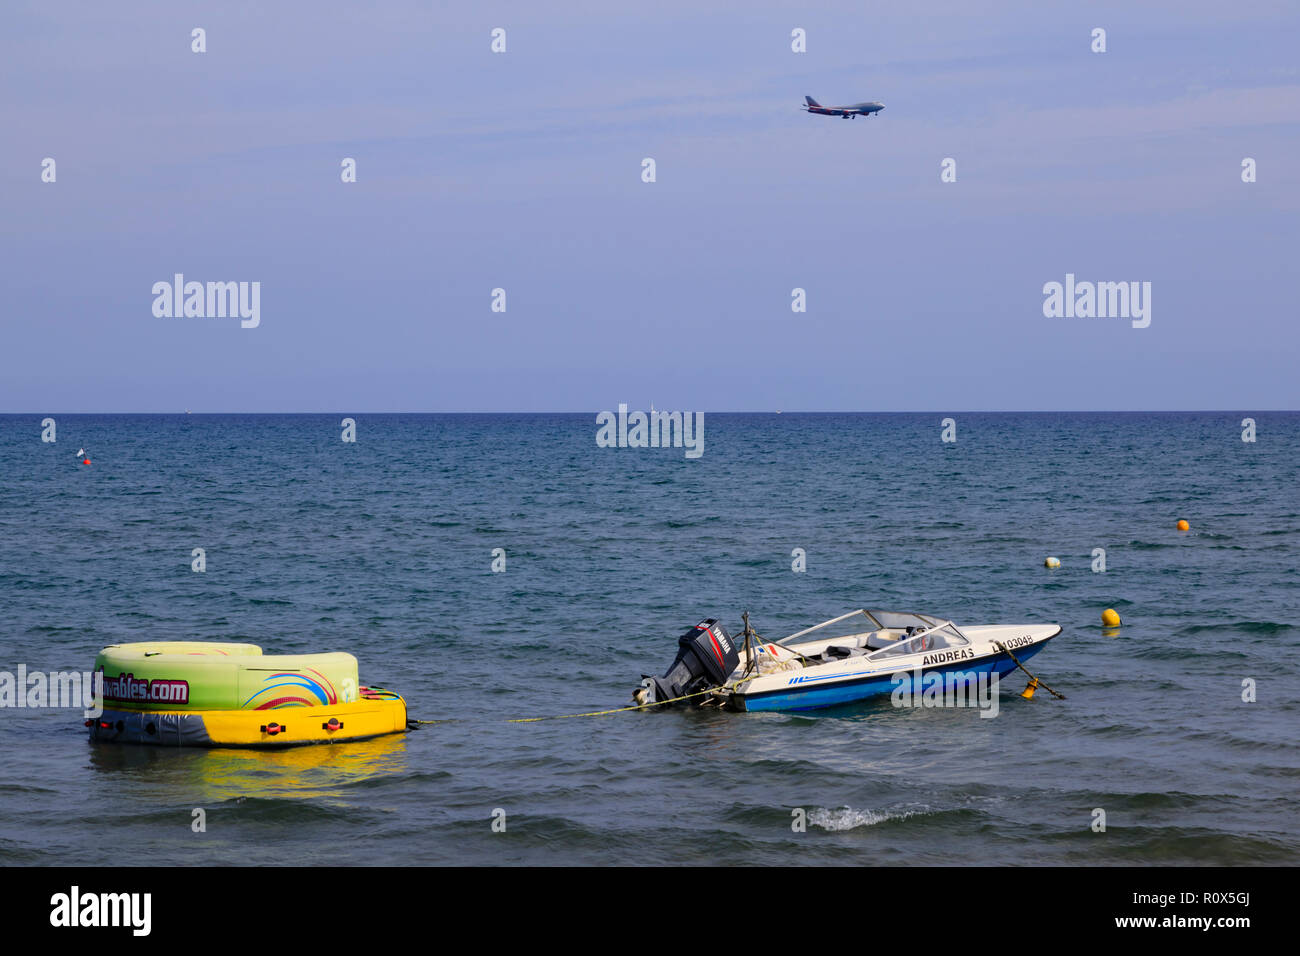 Airliner on approach to Glafcos Clerides International Airport, Larnaca, over boats anchored at Finikoudes beach, Cyprus October 2018 - Stock Image